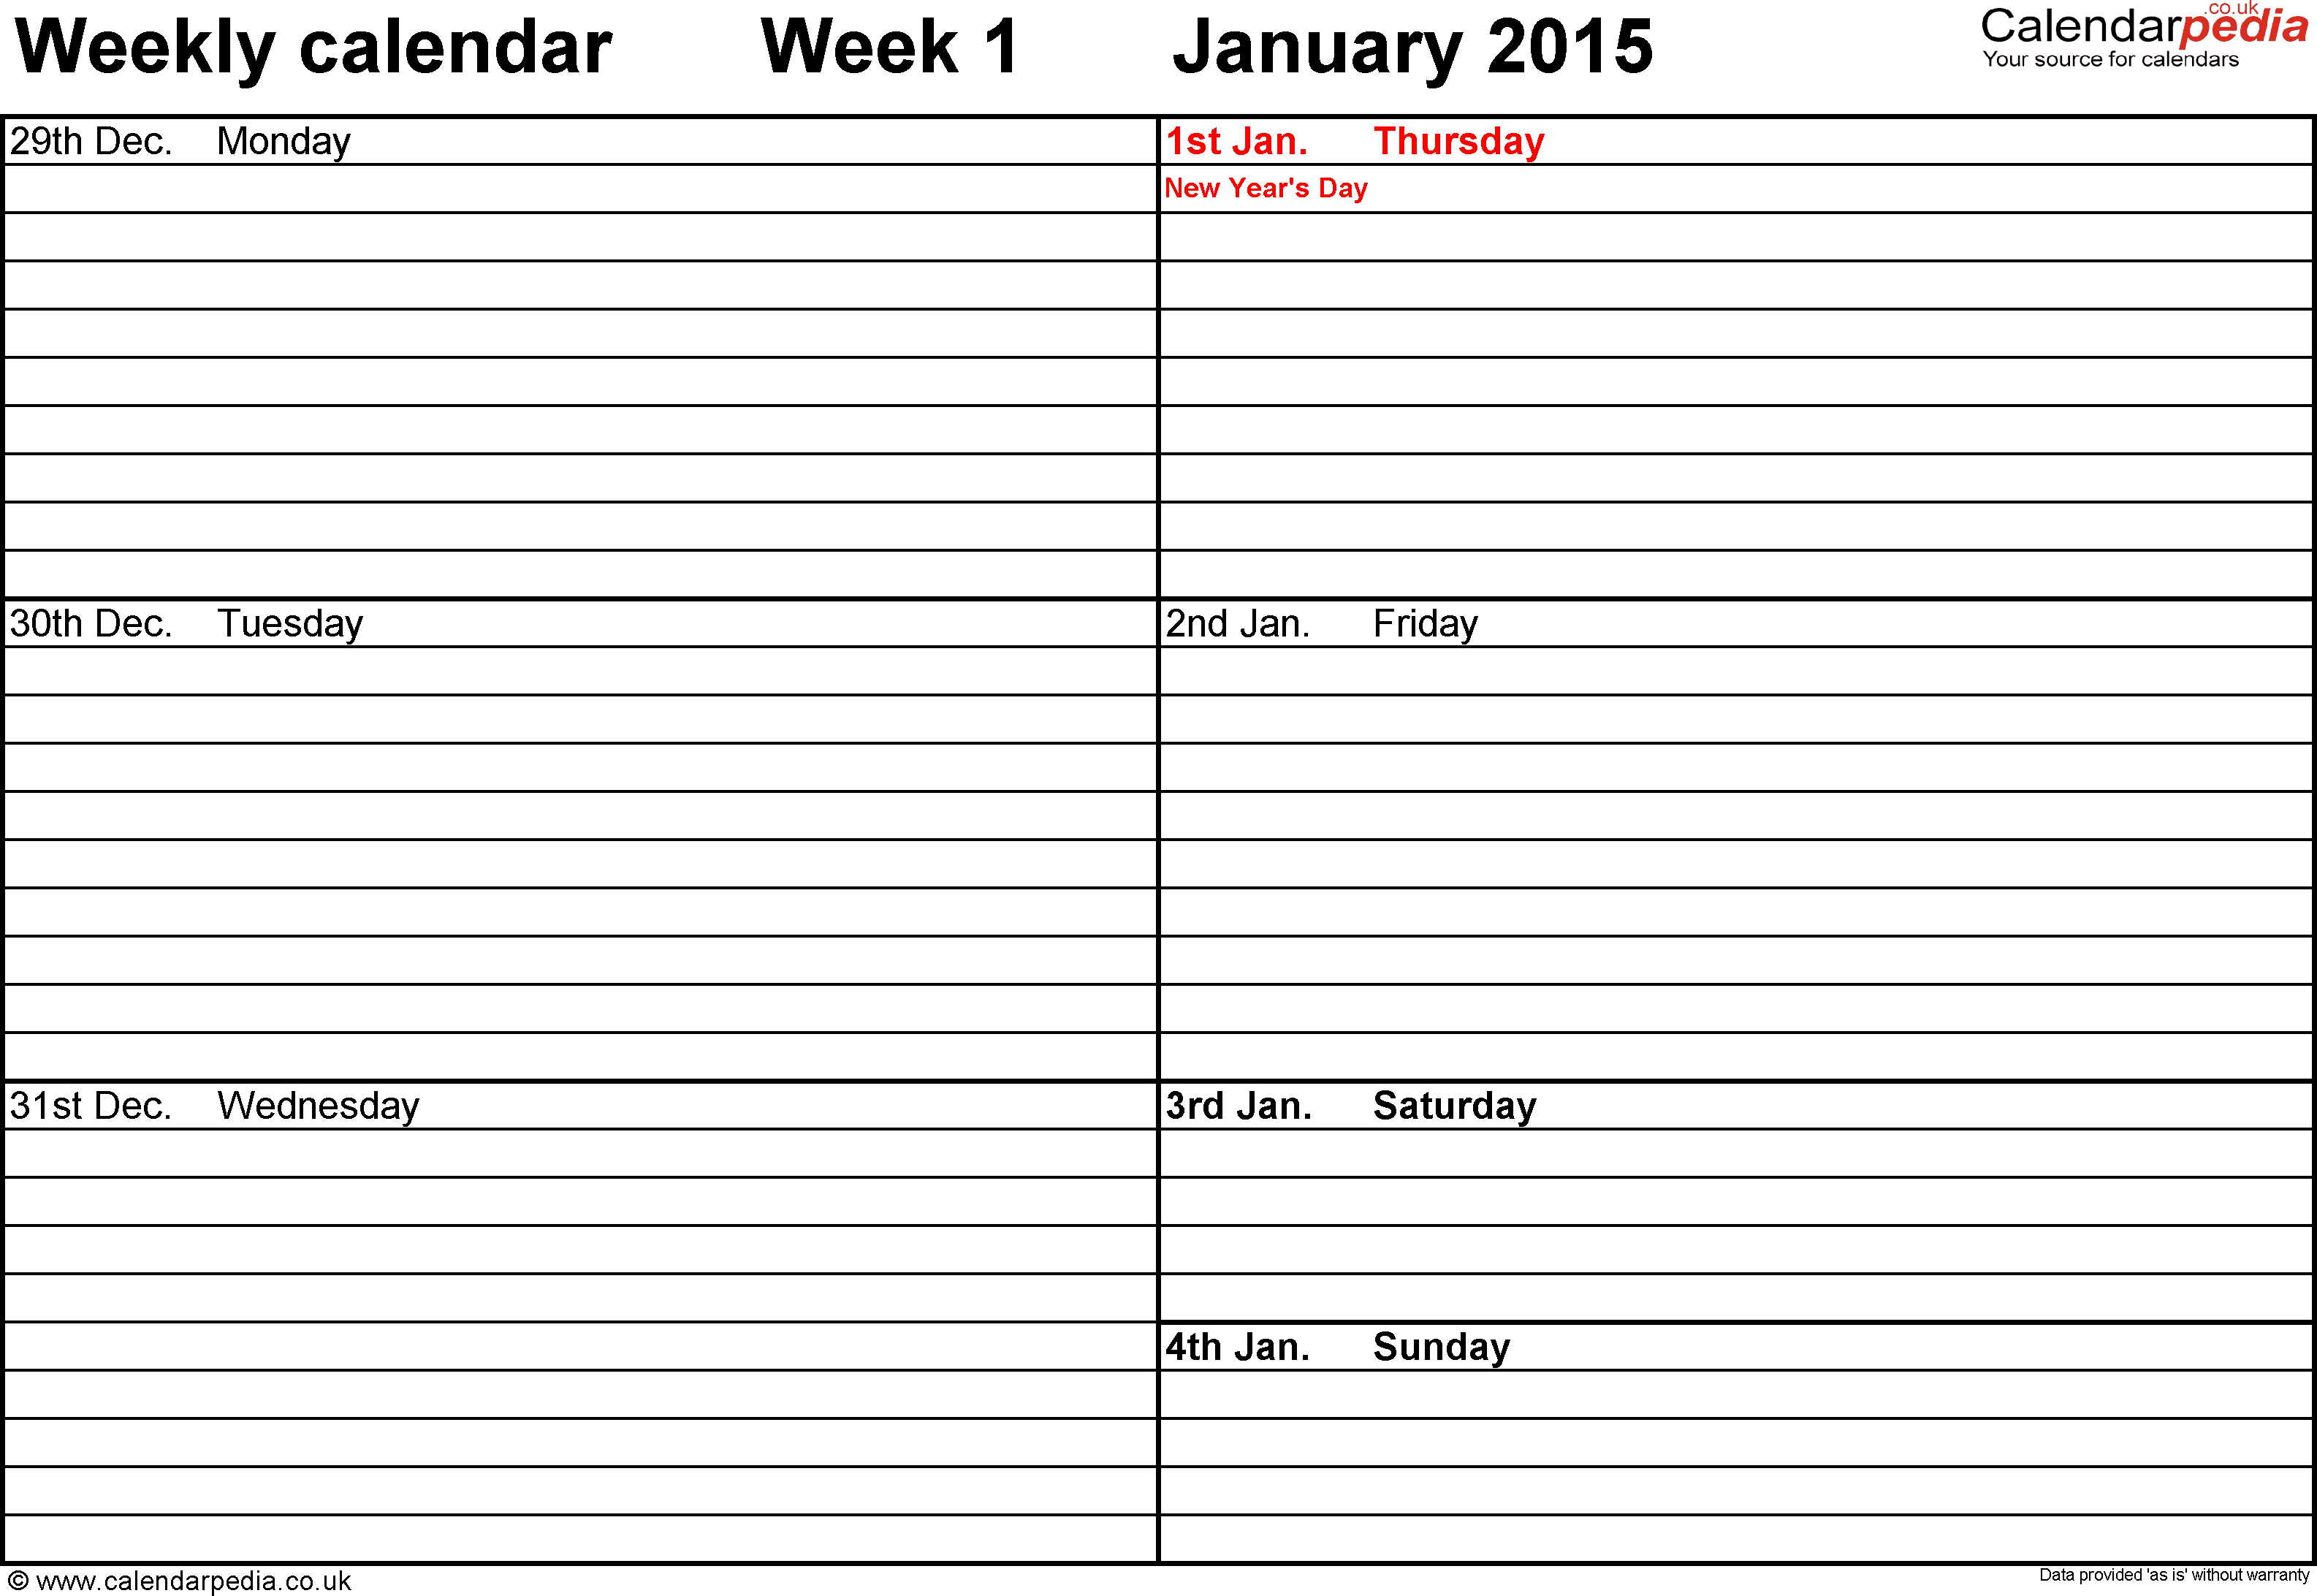 Weekly calendar 2015 uk free printable templates for excel excel template 5 weekly calendar 2015 landscape orientation 53 pages 1 calendar pronofoot35fo Image collections